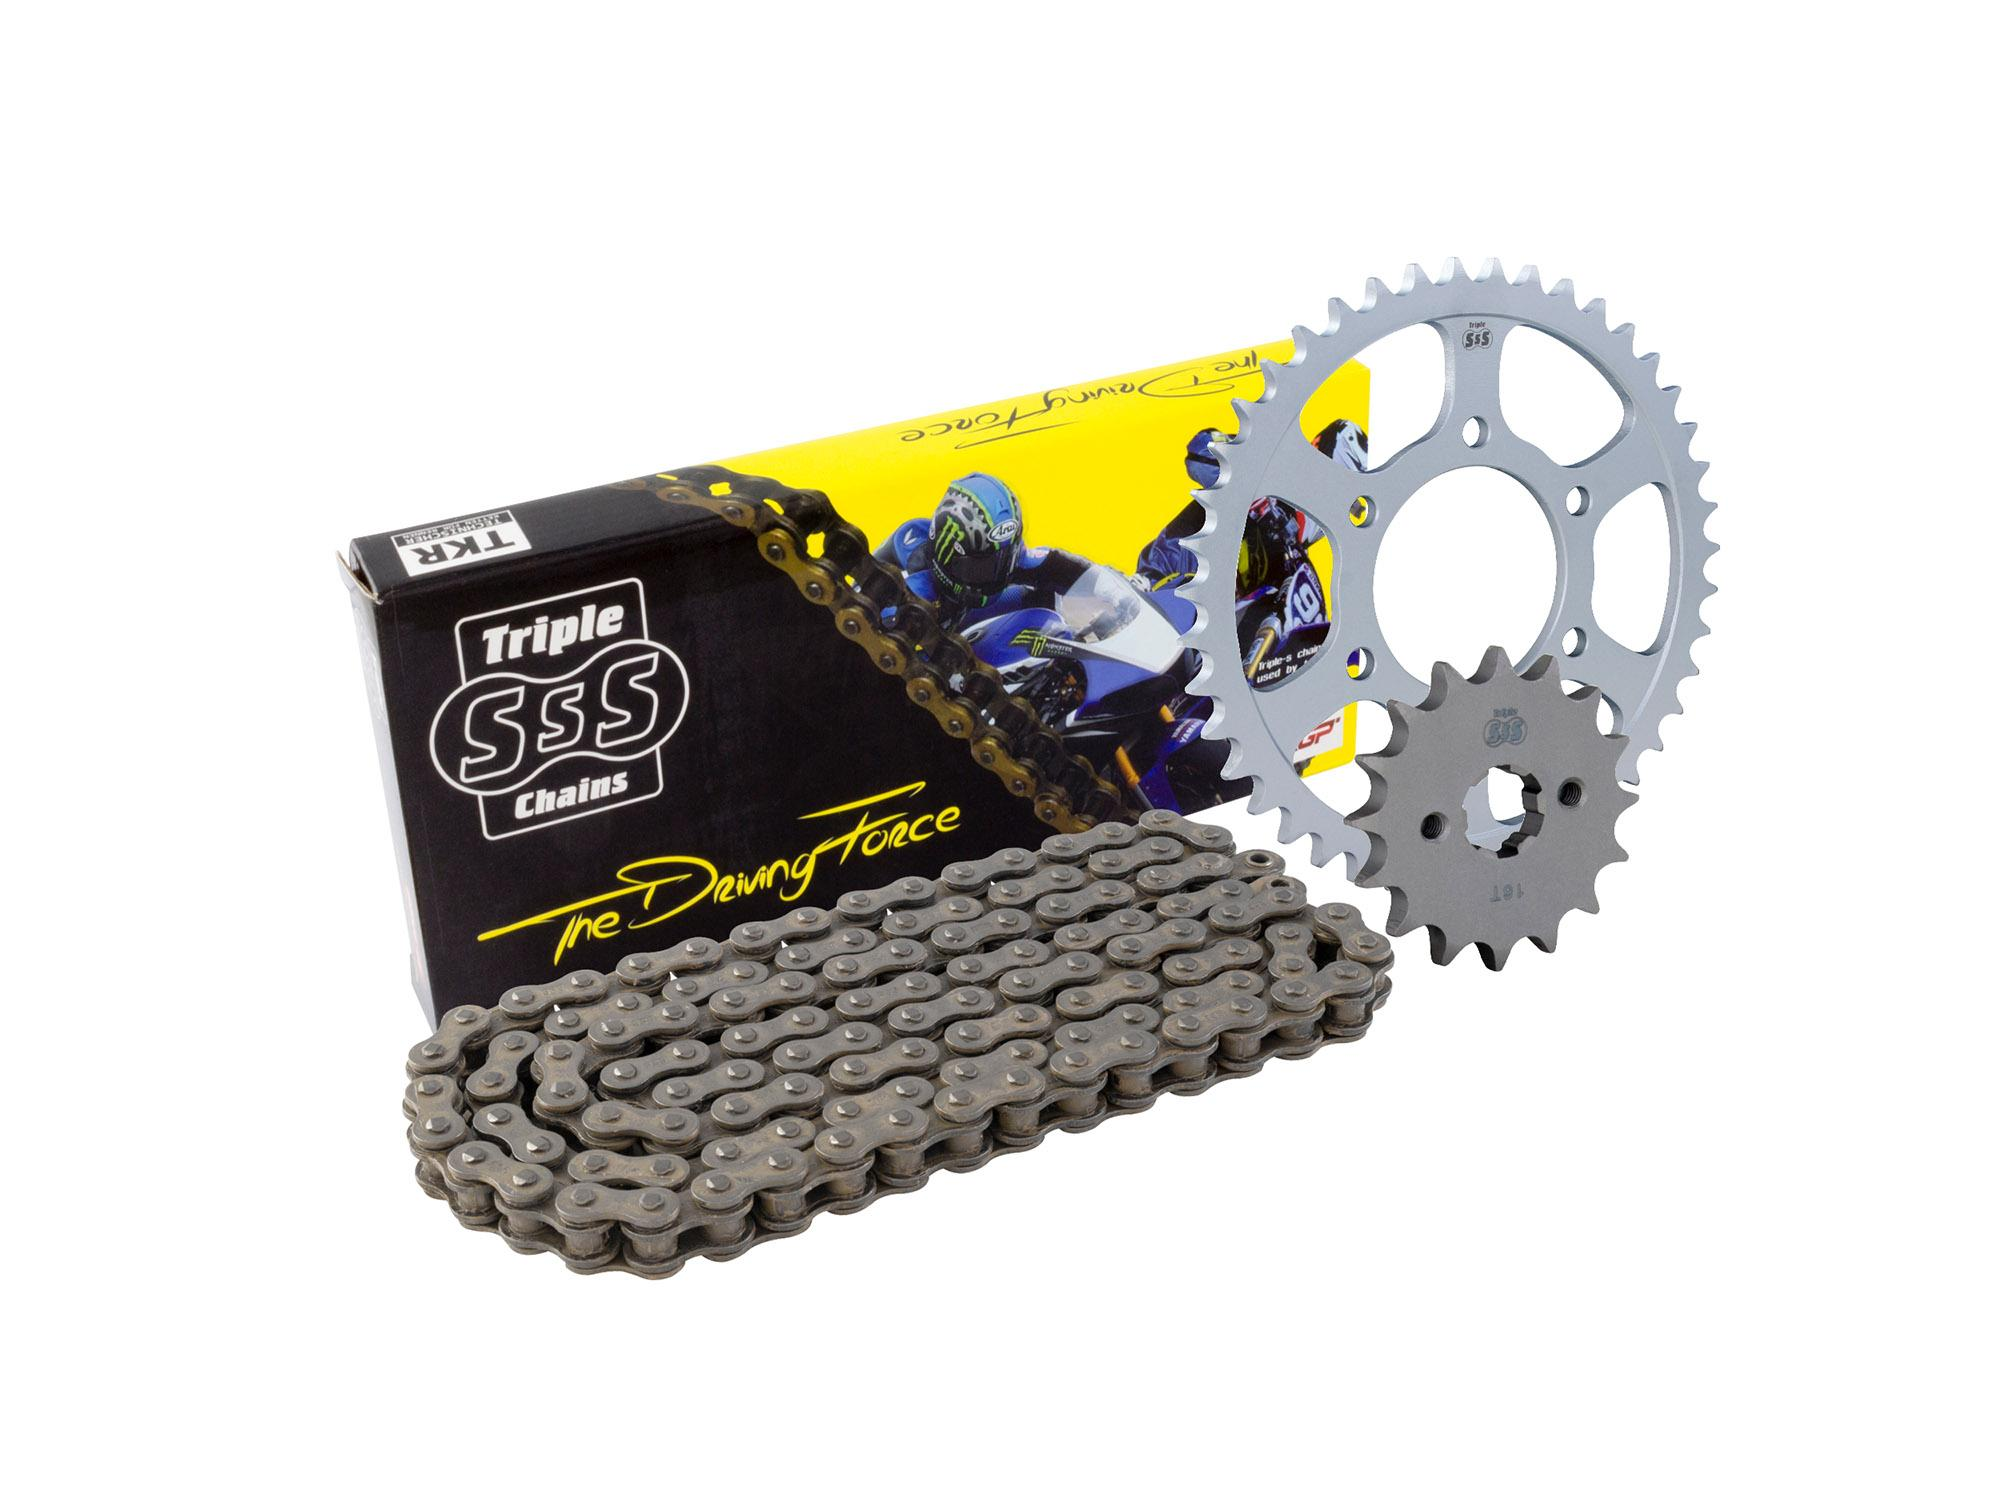 Honda CBR250R 11-13 Chain & Sprocket Kit: 14T Front, 38T Rear, HD O-Ring Black Chain 520H 108Link